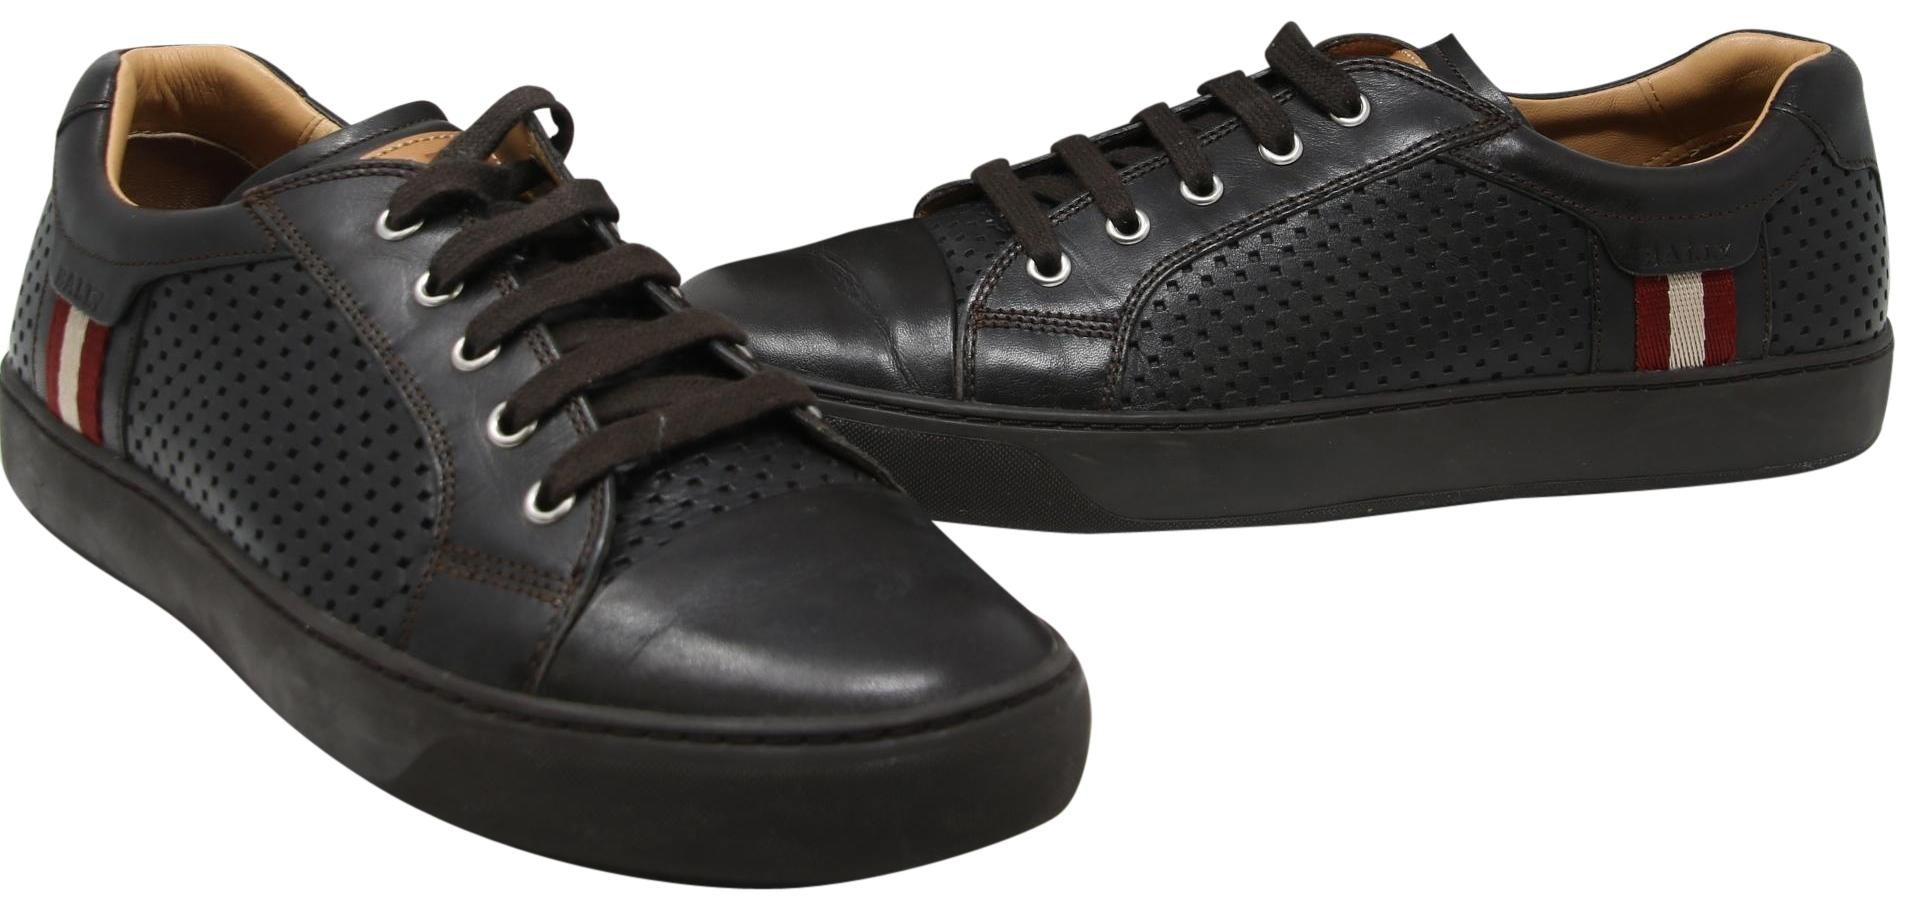 olbia men Winter / autumn 2016 super popular men's sneakers finn comfort olbia clay christmas is the hottest ship to durham new hampshire united states.